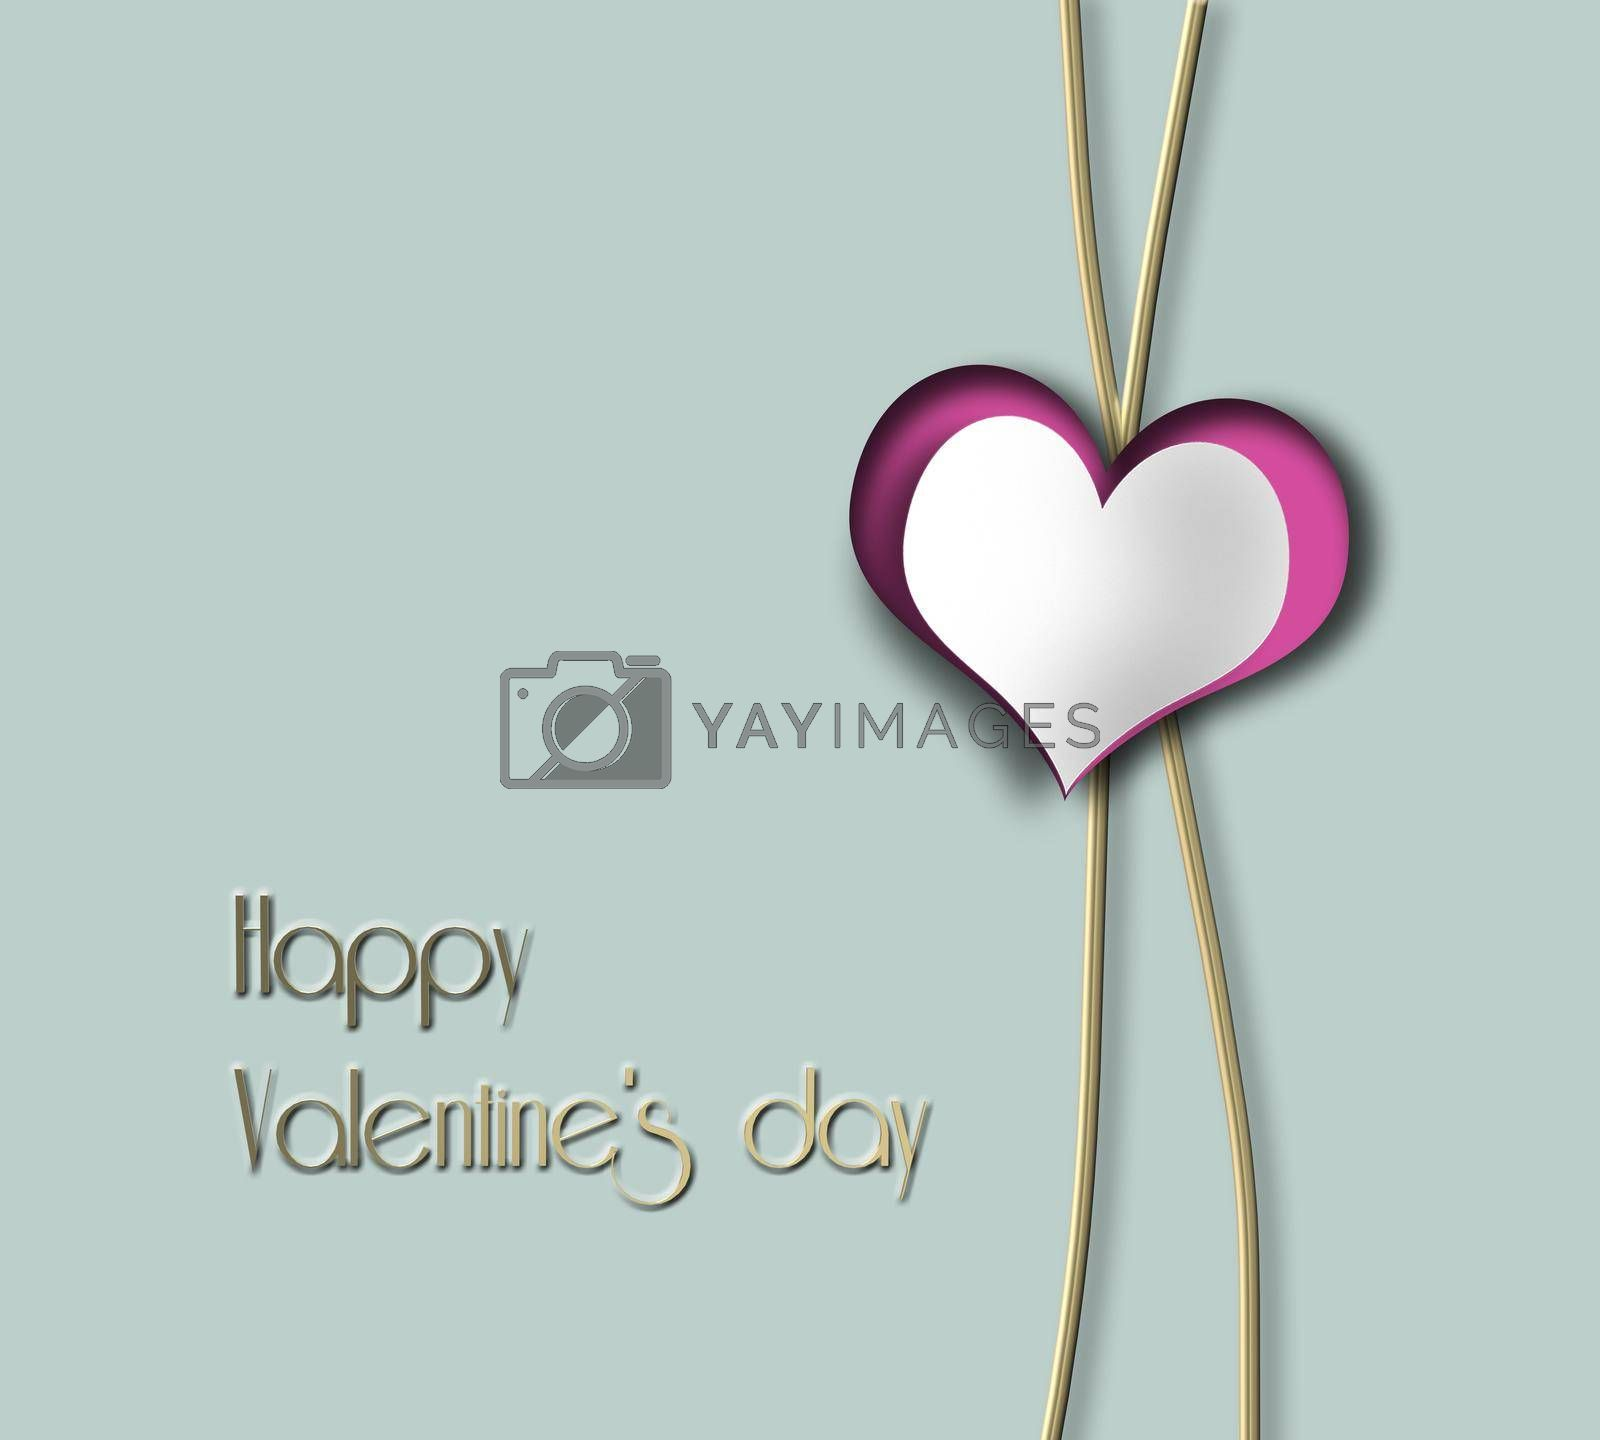 Minimalist Love design, Valentines greeting. Heart on two gold lines, I will always love you symbol on green pastel background. Text Happy Valentines day, 3D rendering